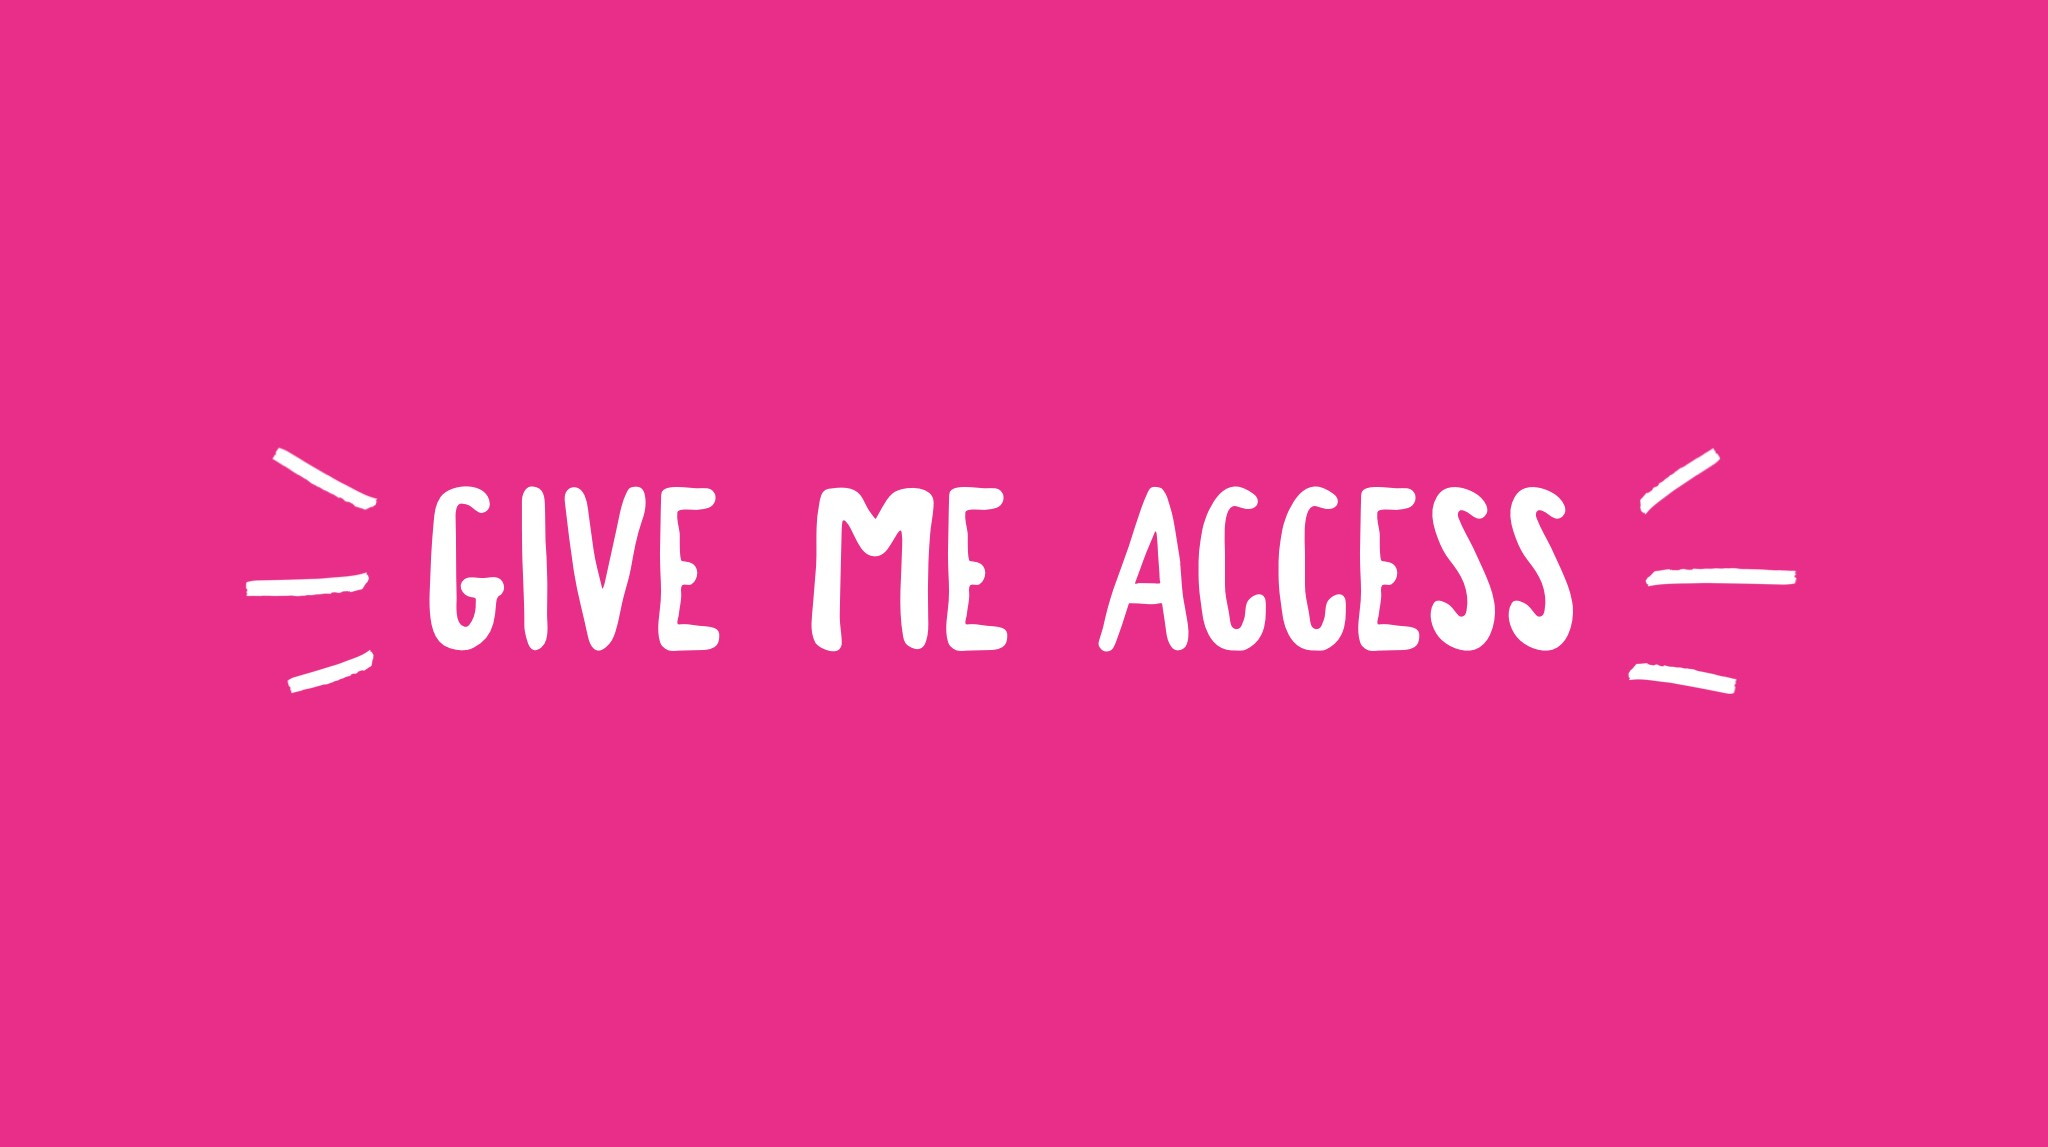 give_me_access.jpg